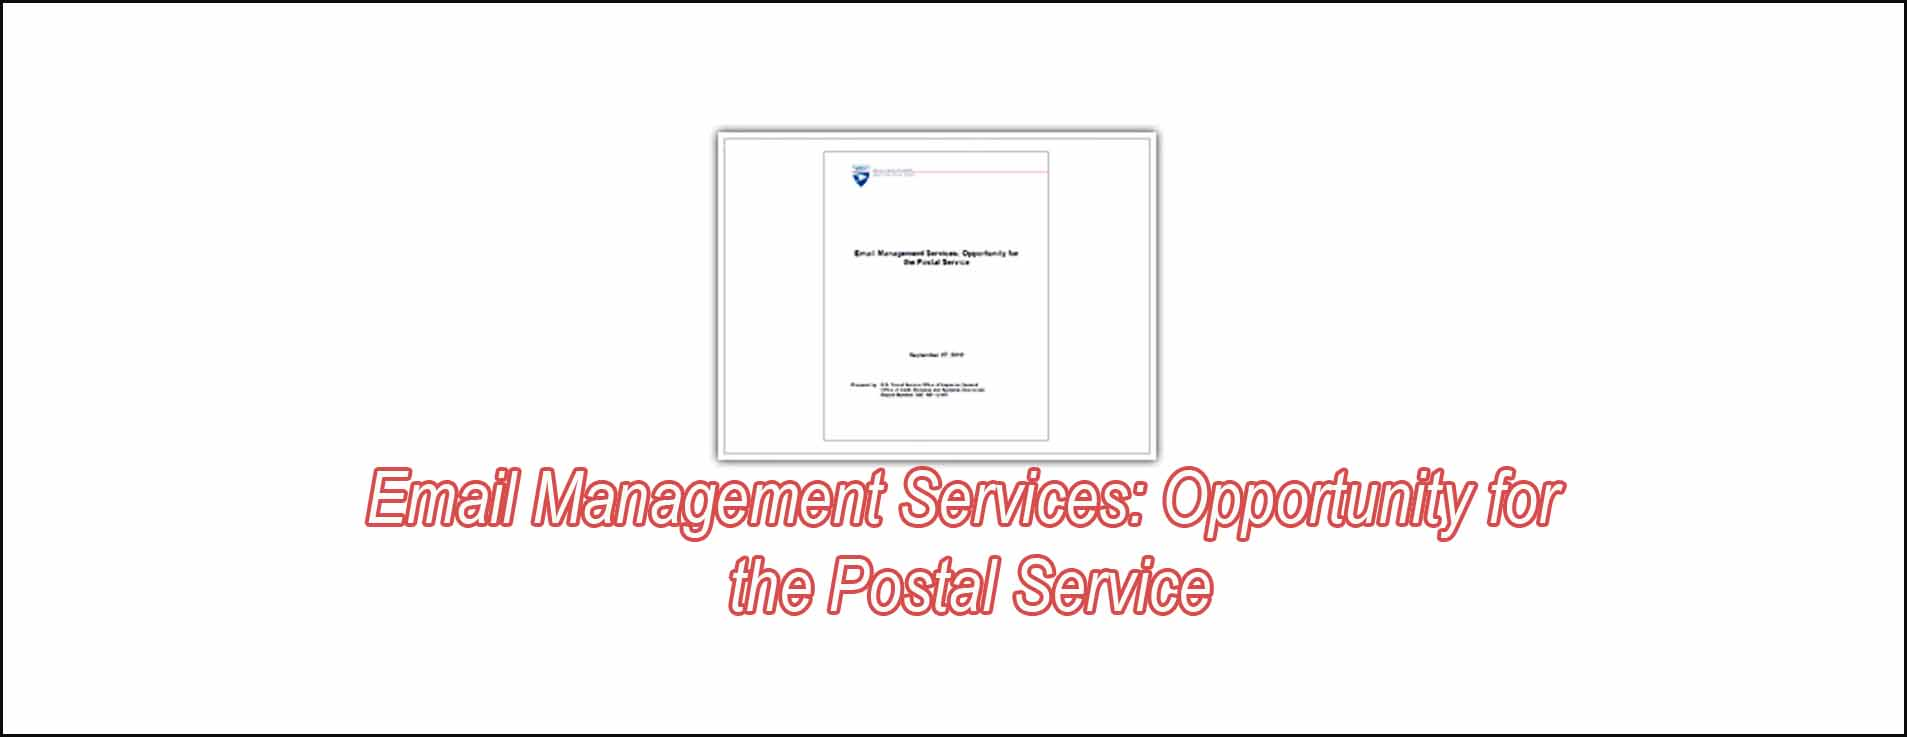 Email Management Services: Opportunity For The Postal Service